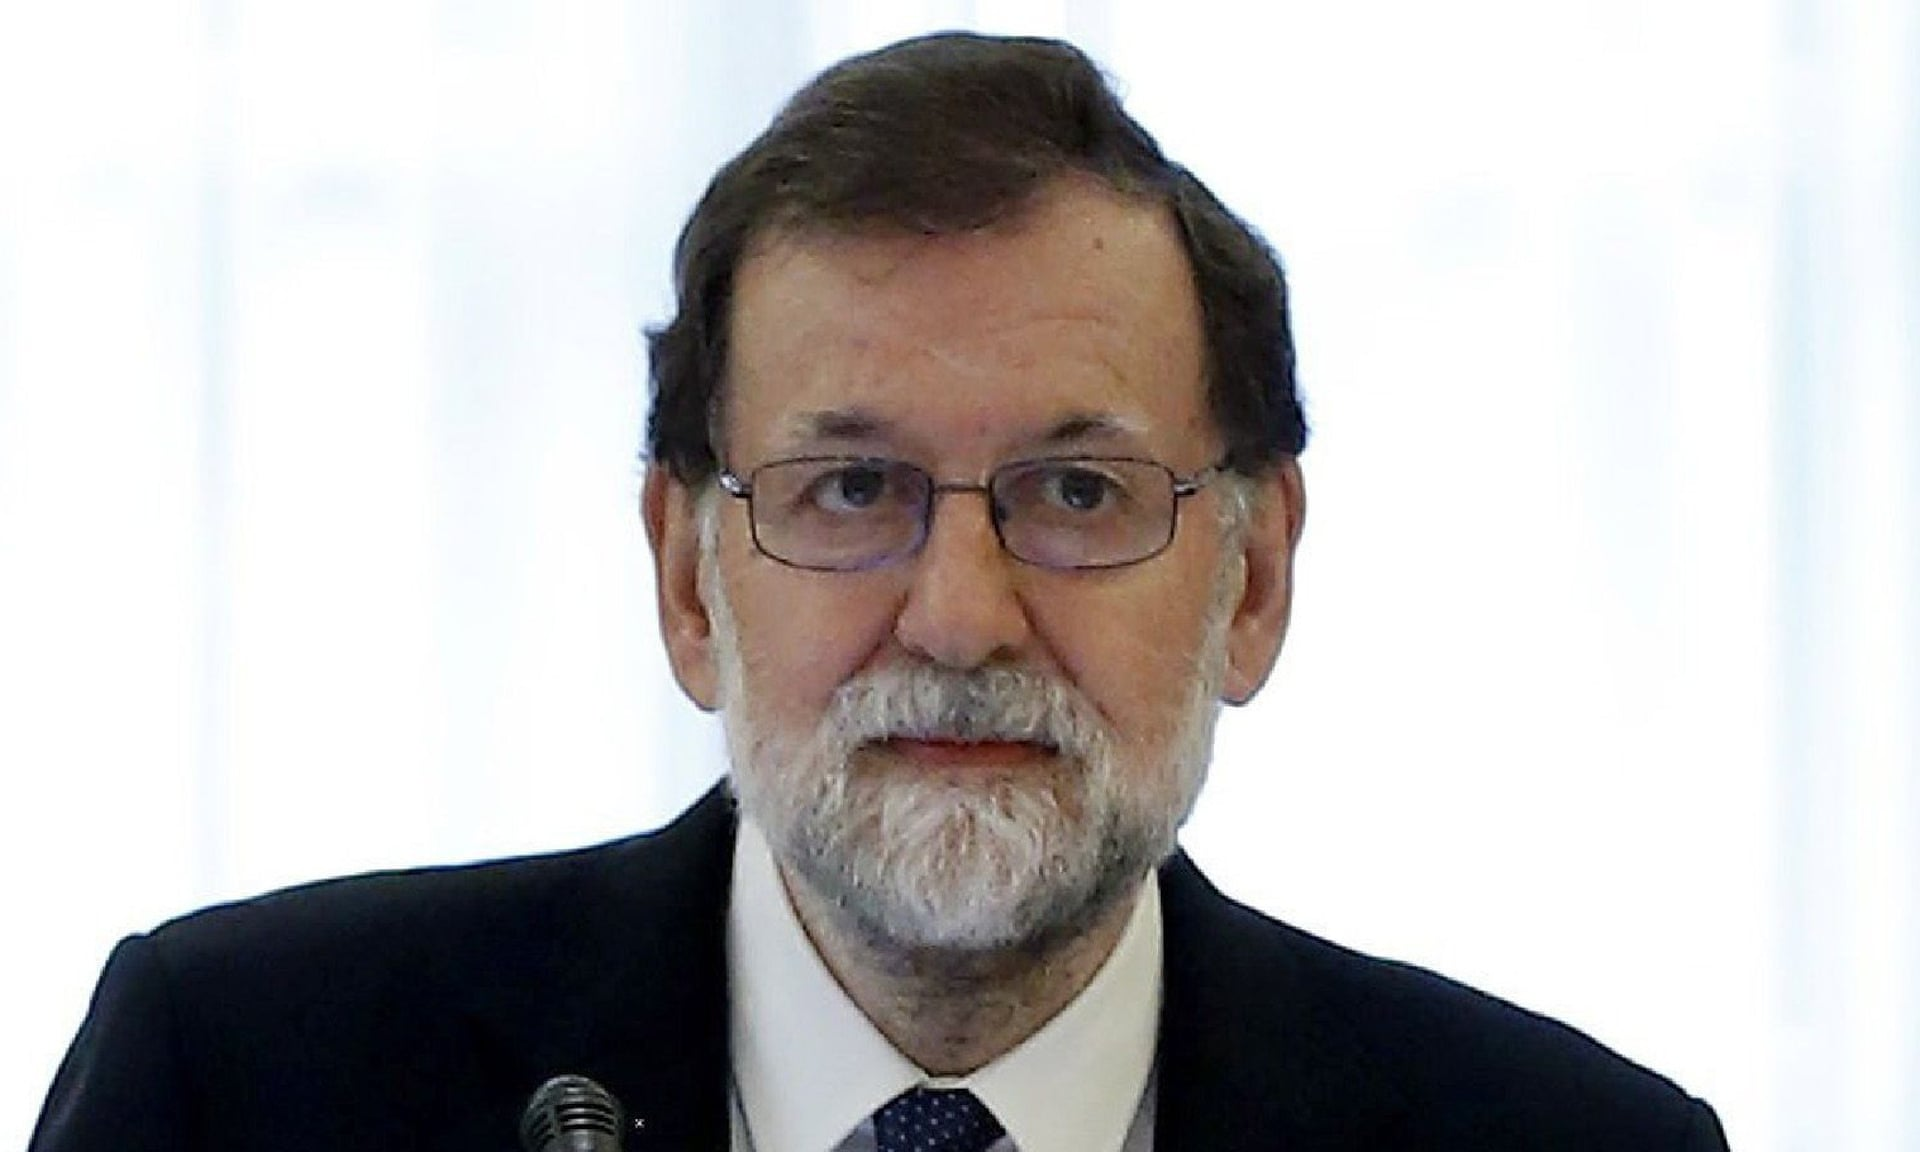 Mariano Rajoy: Spain's 'safe pair of hands' risking it all on Catalonia